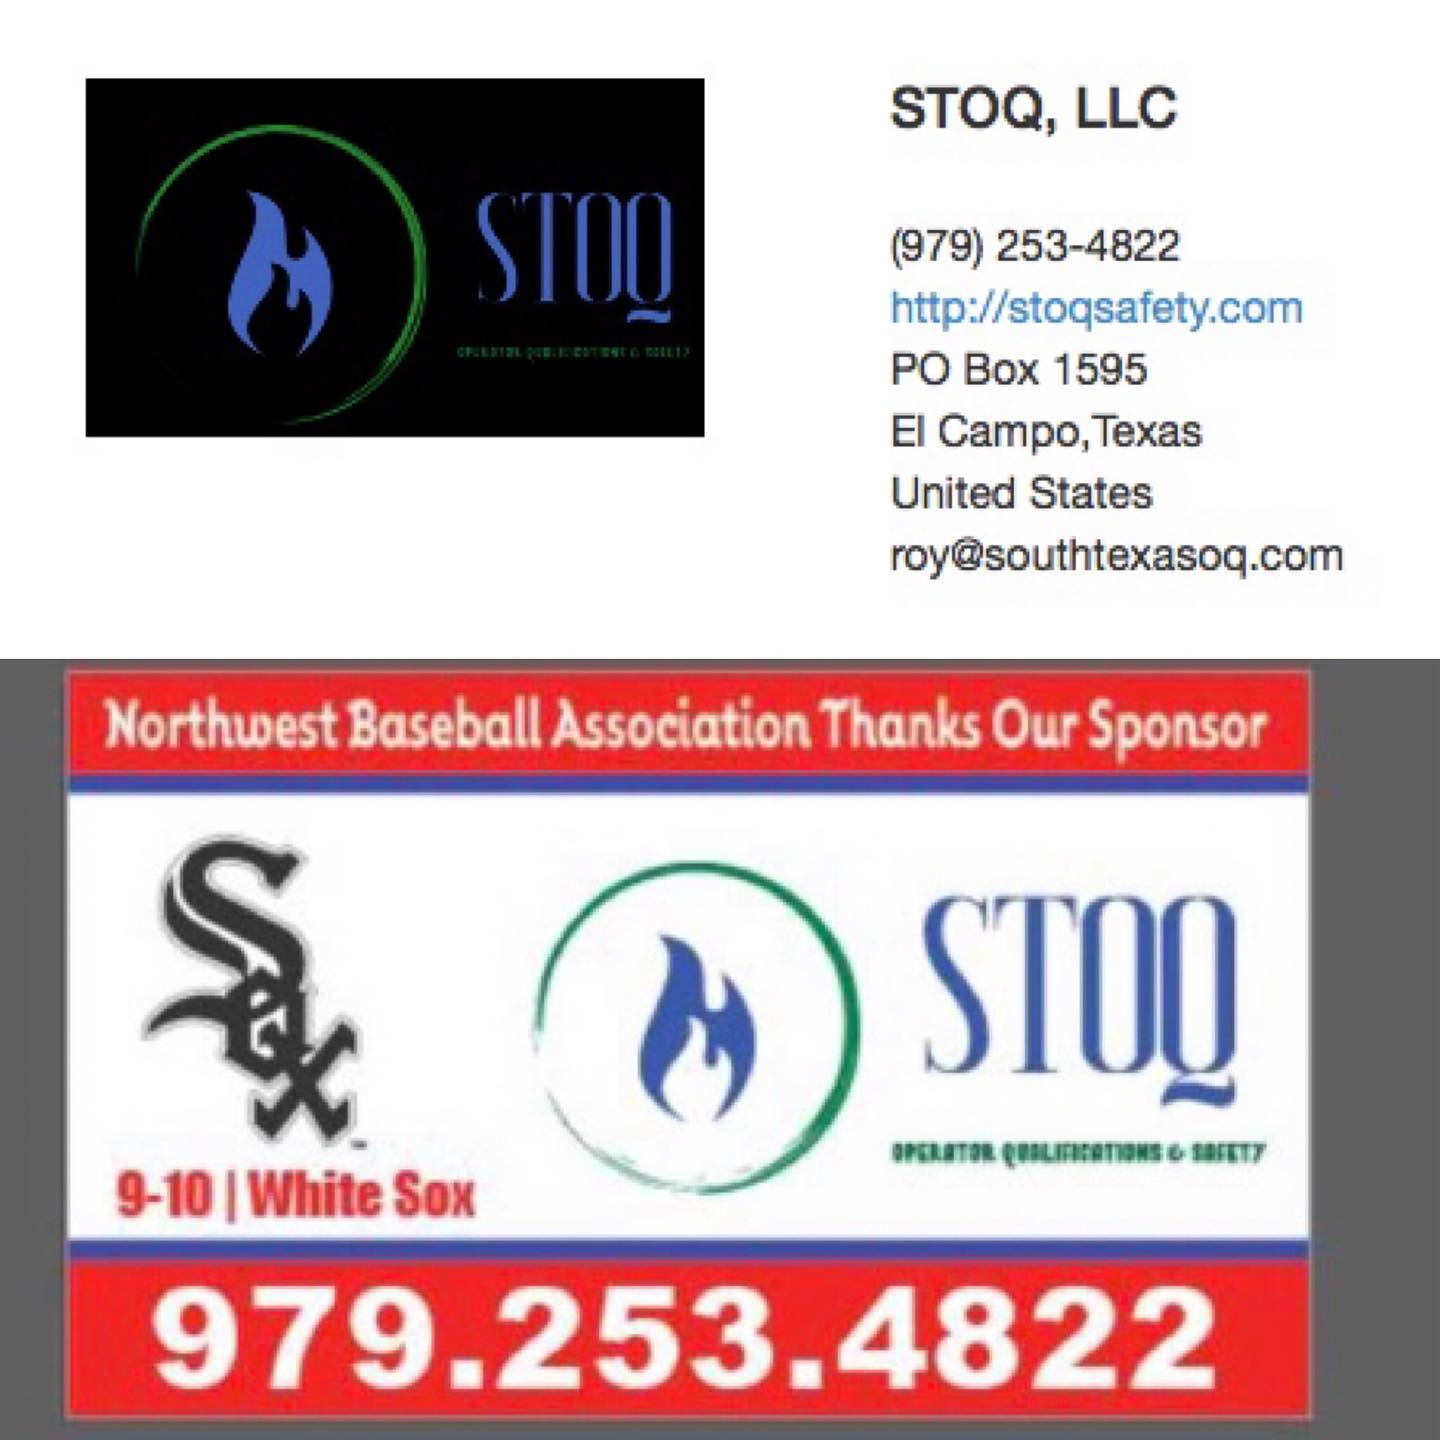 We are excited to sponsor the White Sox 9-10 year olds of the